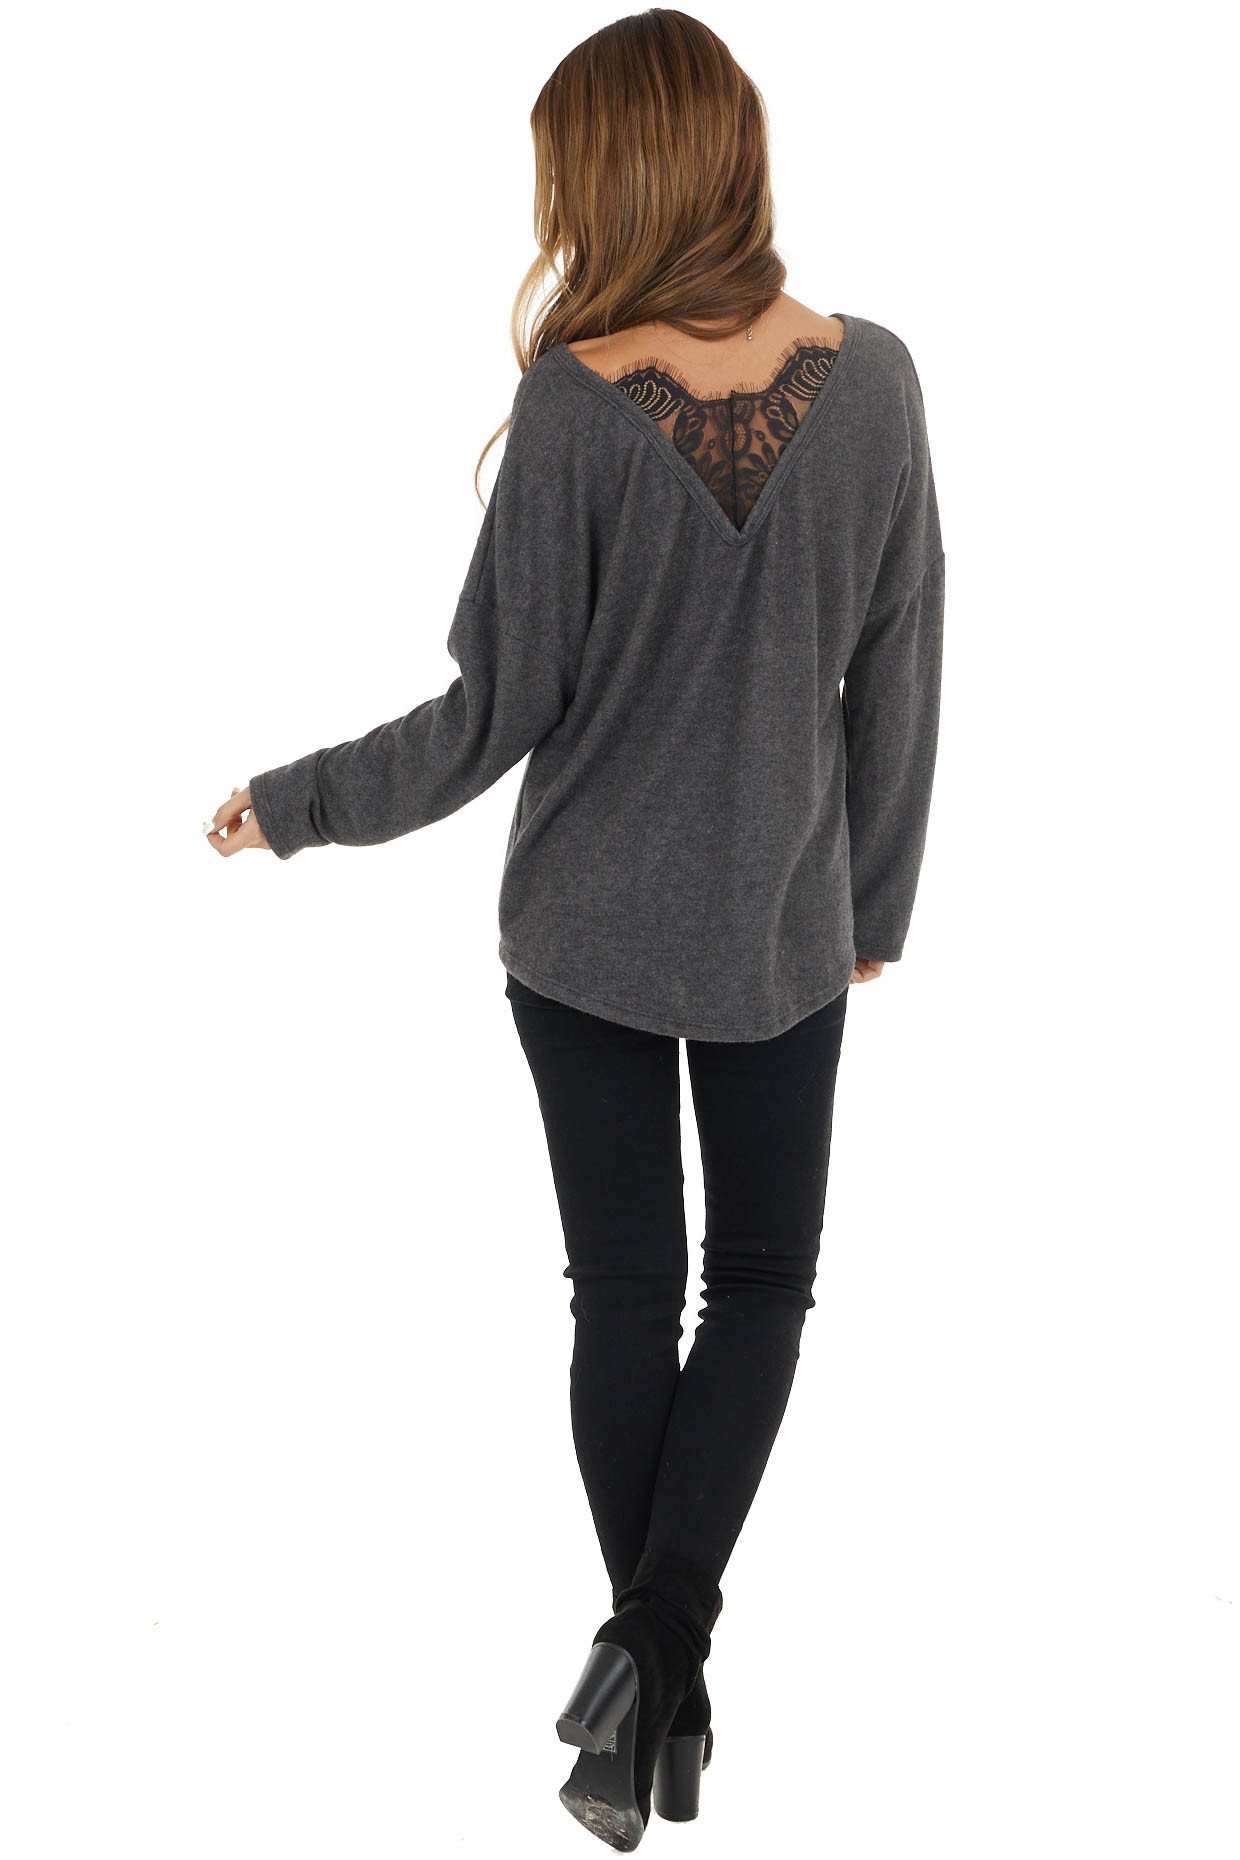 Charcoal Knit Long Sleeve Top with Lace Detail on Back